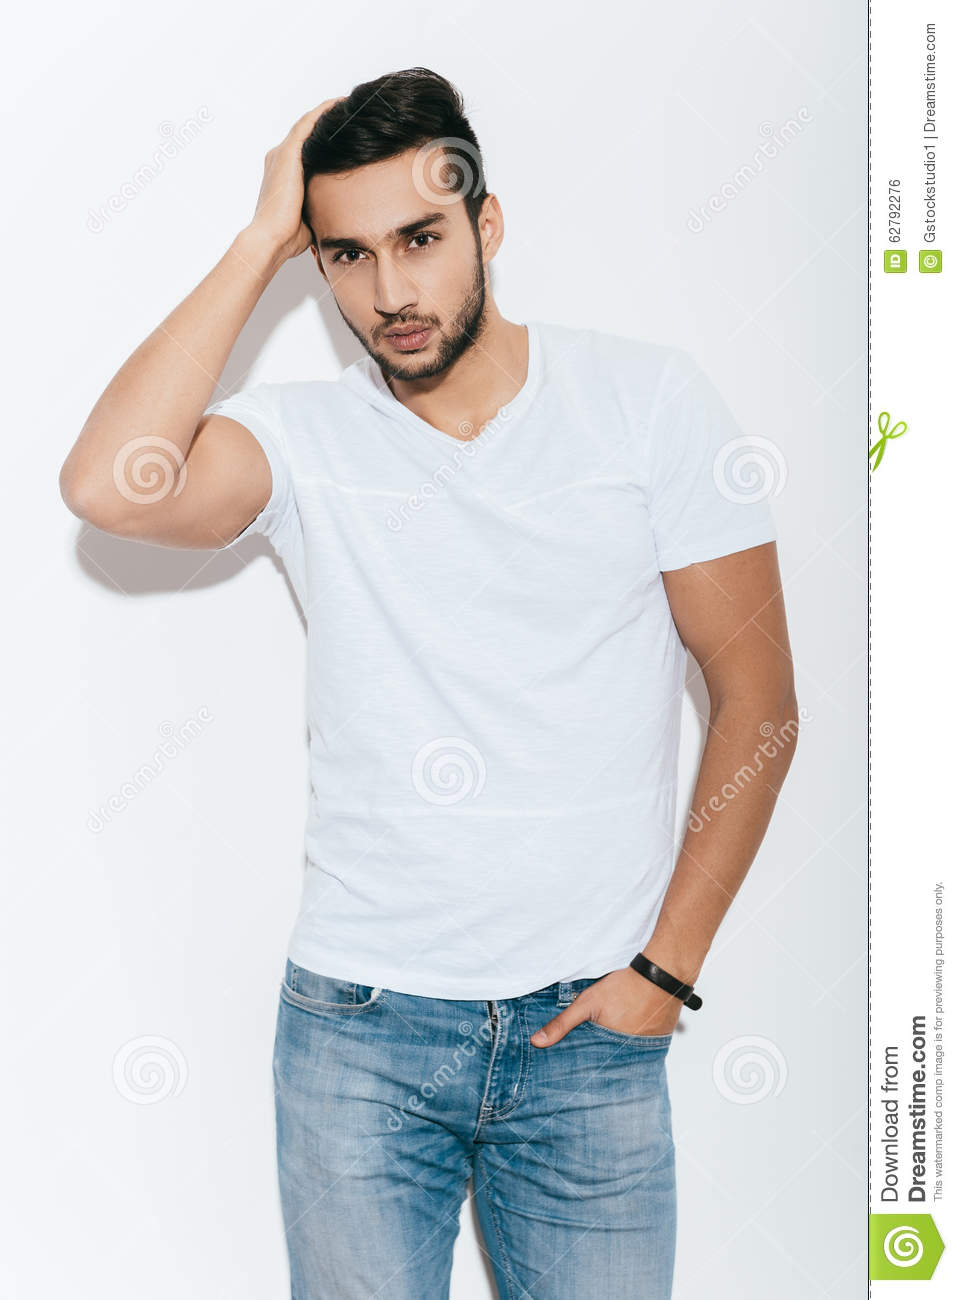 Used To Look Good. Stock Photo